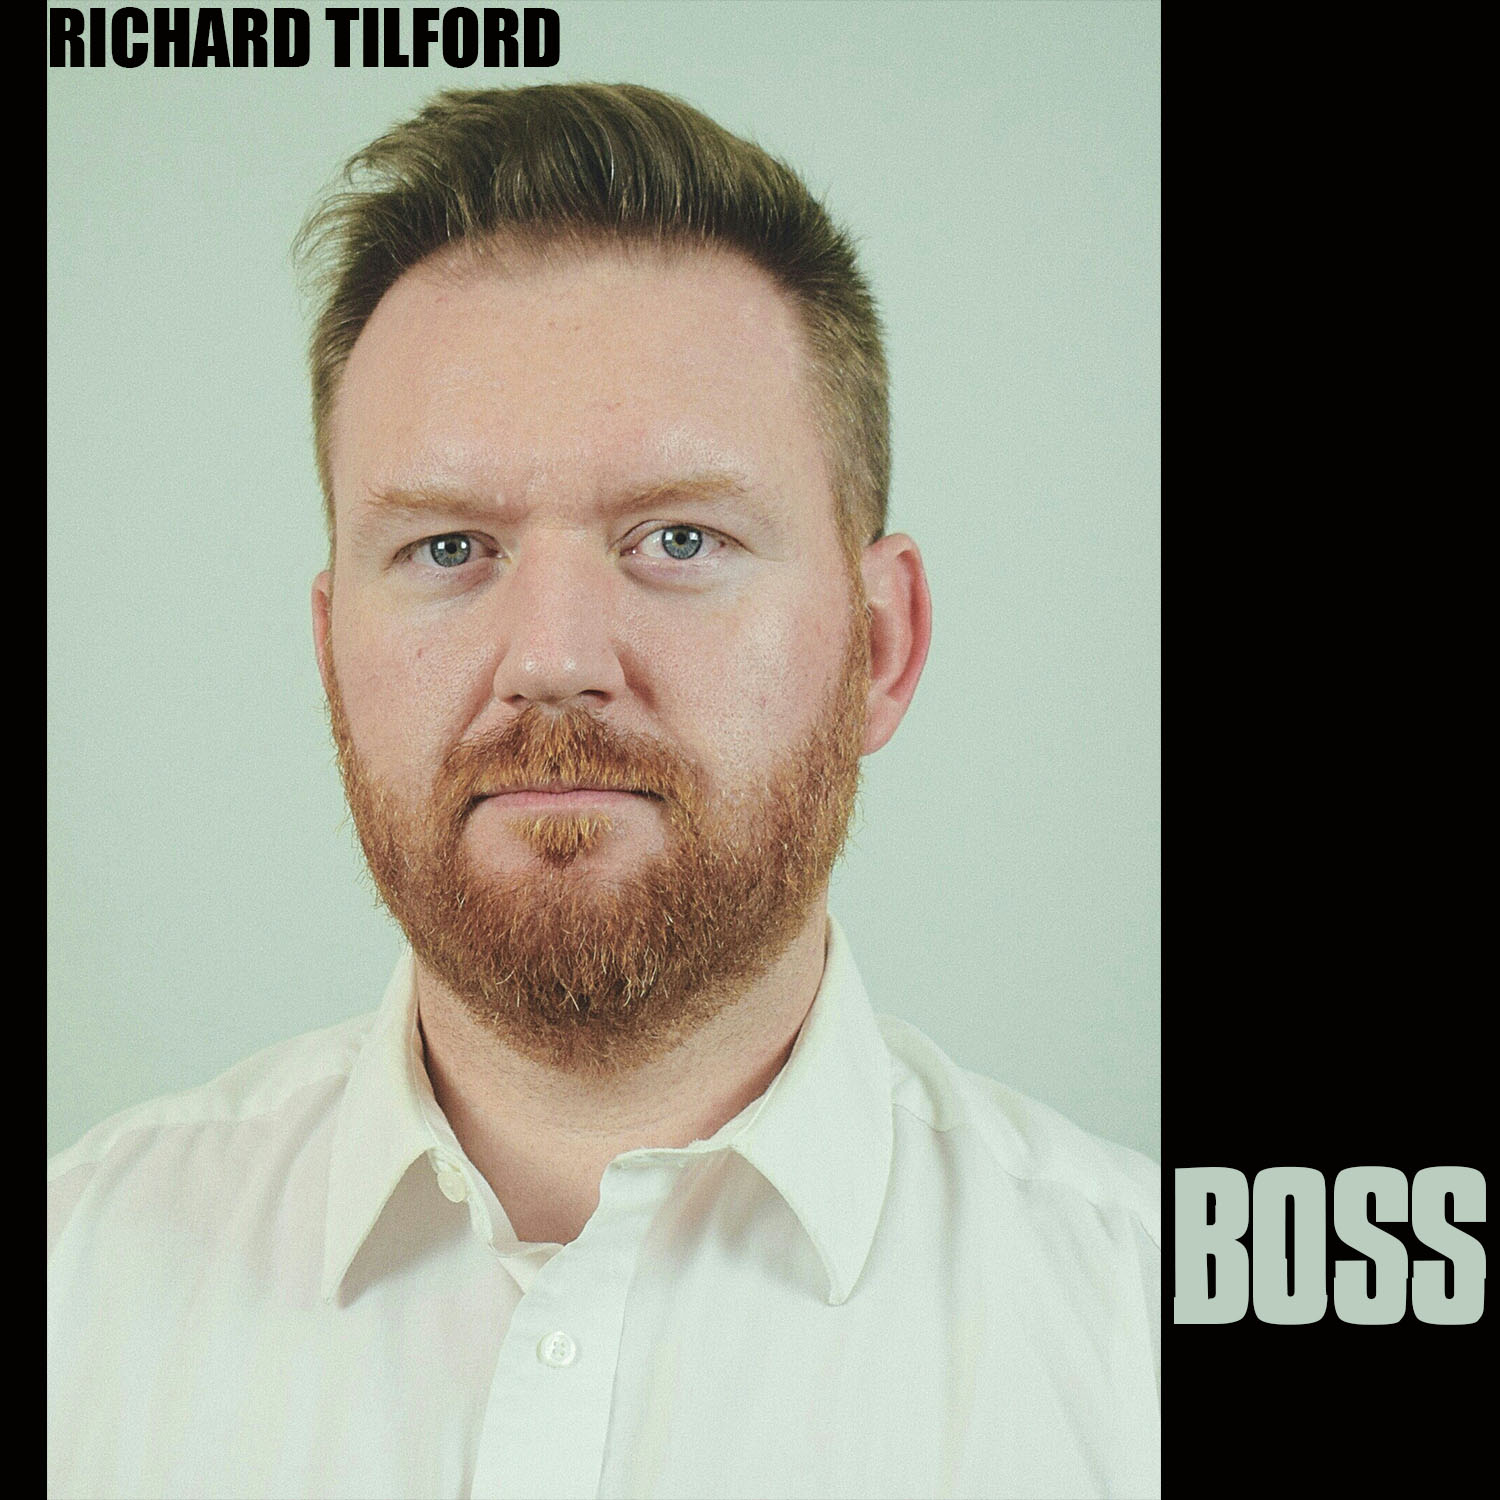 Richard Tilford stars as The DISRUPTOR - Richard Tilford became involved with the film industry when he relocated to the Atlanta area in 2016. He has acted in short films, music videos, and other creative projects. His roles have a wide range such as biker, redneck, and villain, to construction worker, prisoner, and teacher. He enjoys working with people who want to get their visions out into the world. Richard is also involved with behind the scenes photography and videography. He has worked on a cruise ship in Hawaii, drove tour buses in California, and traveled to world destinations including Costa Rica, Europe, China and Australia. Richard is honored to have worked with so many talented people in Atlanta. He wishes everyone the best and knows we can accomplish anything if we can work together. We are all connected.@richard.tilford on ig